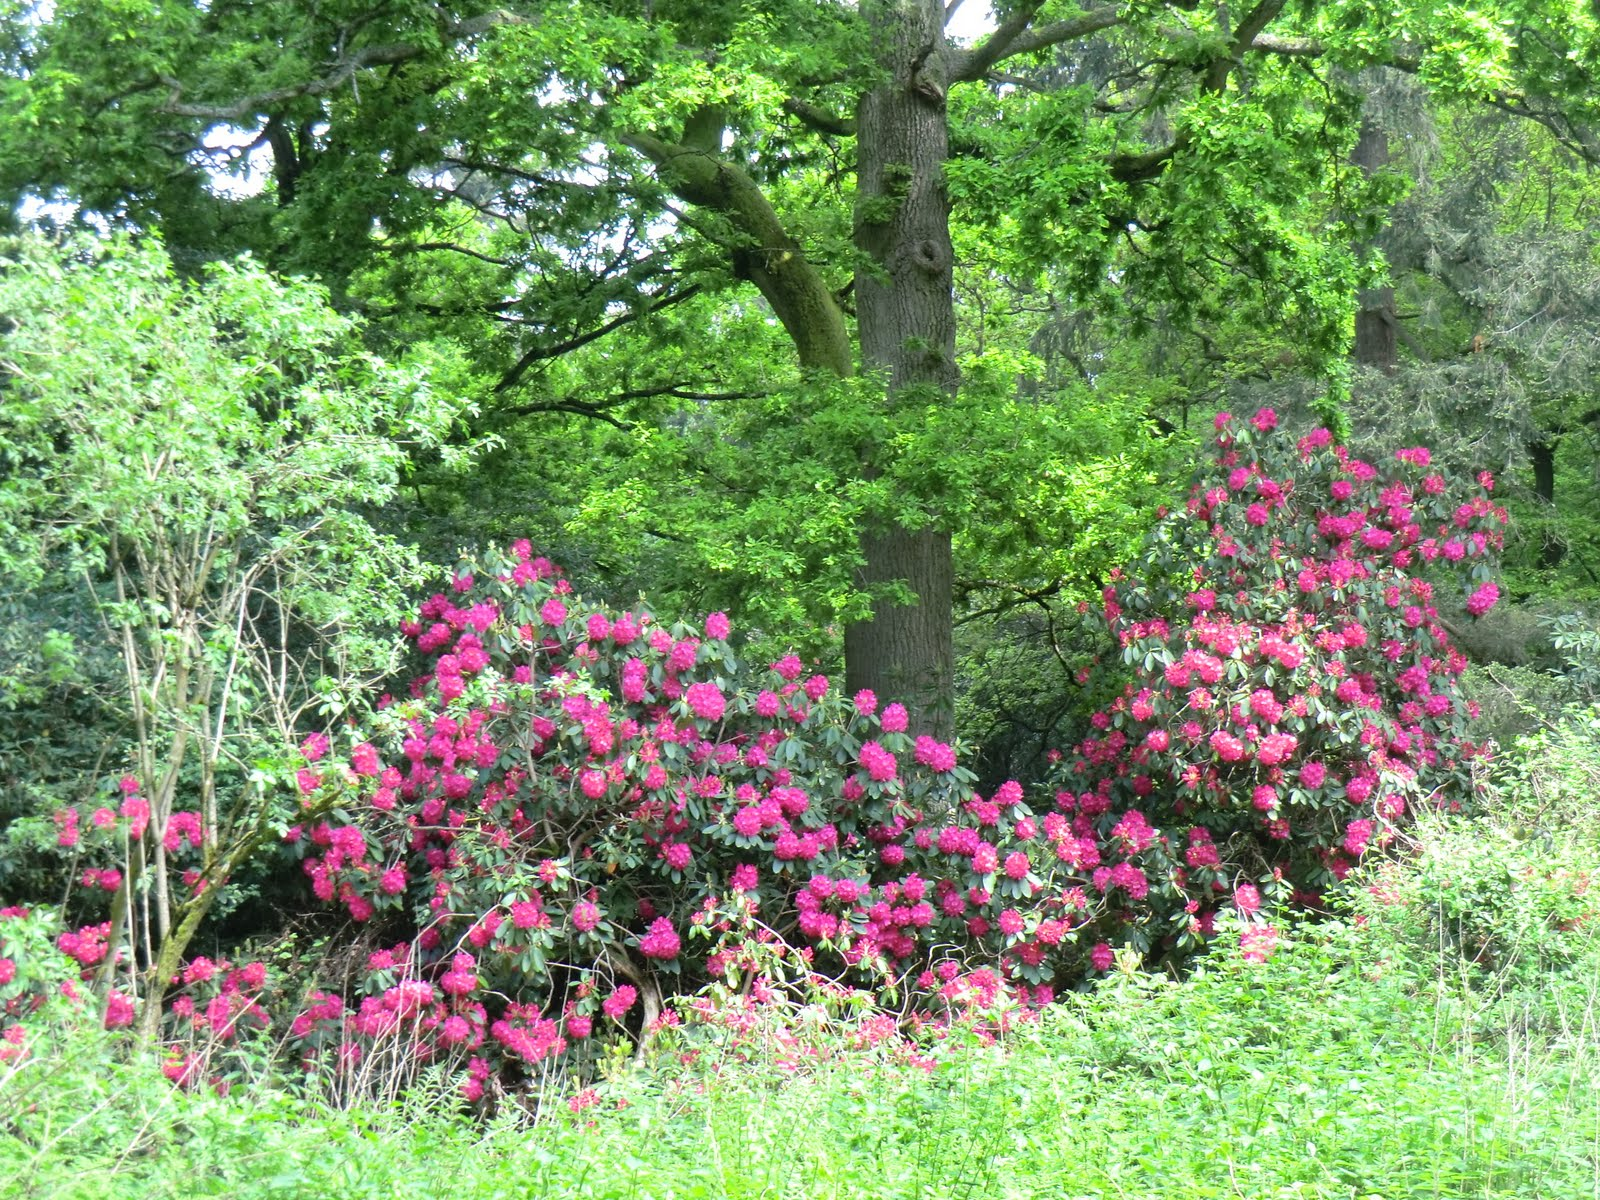 CIMG6924 Invasive rhododendron, Banstead Wood